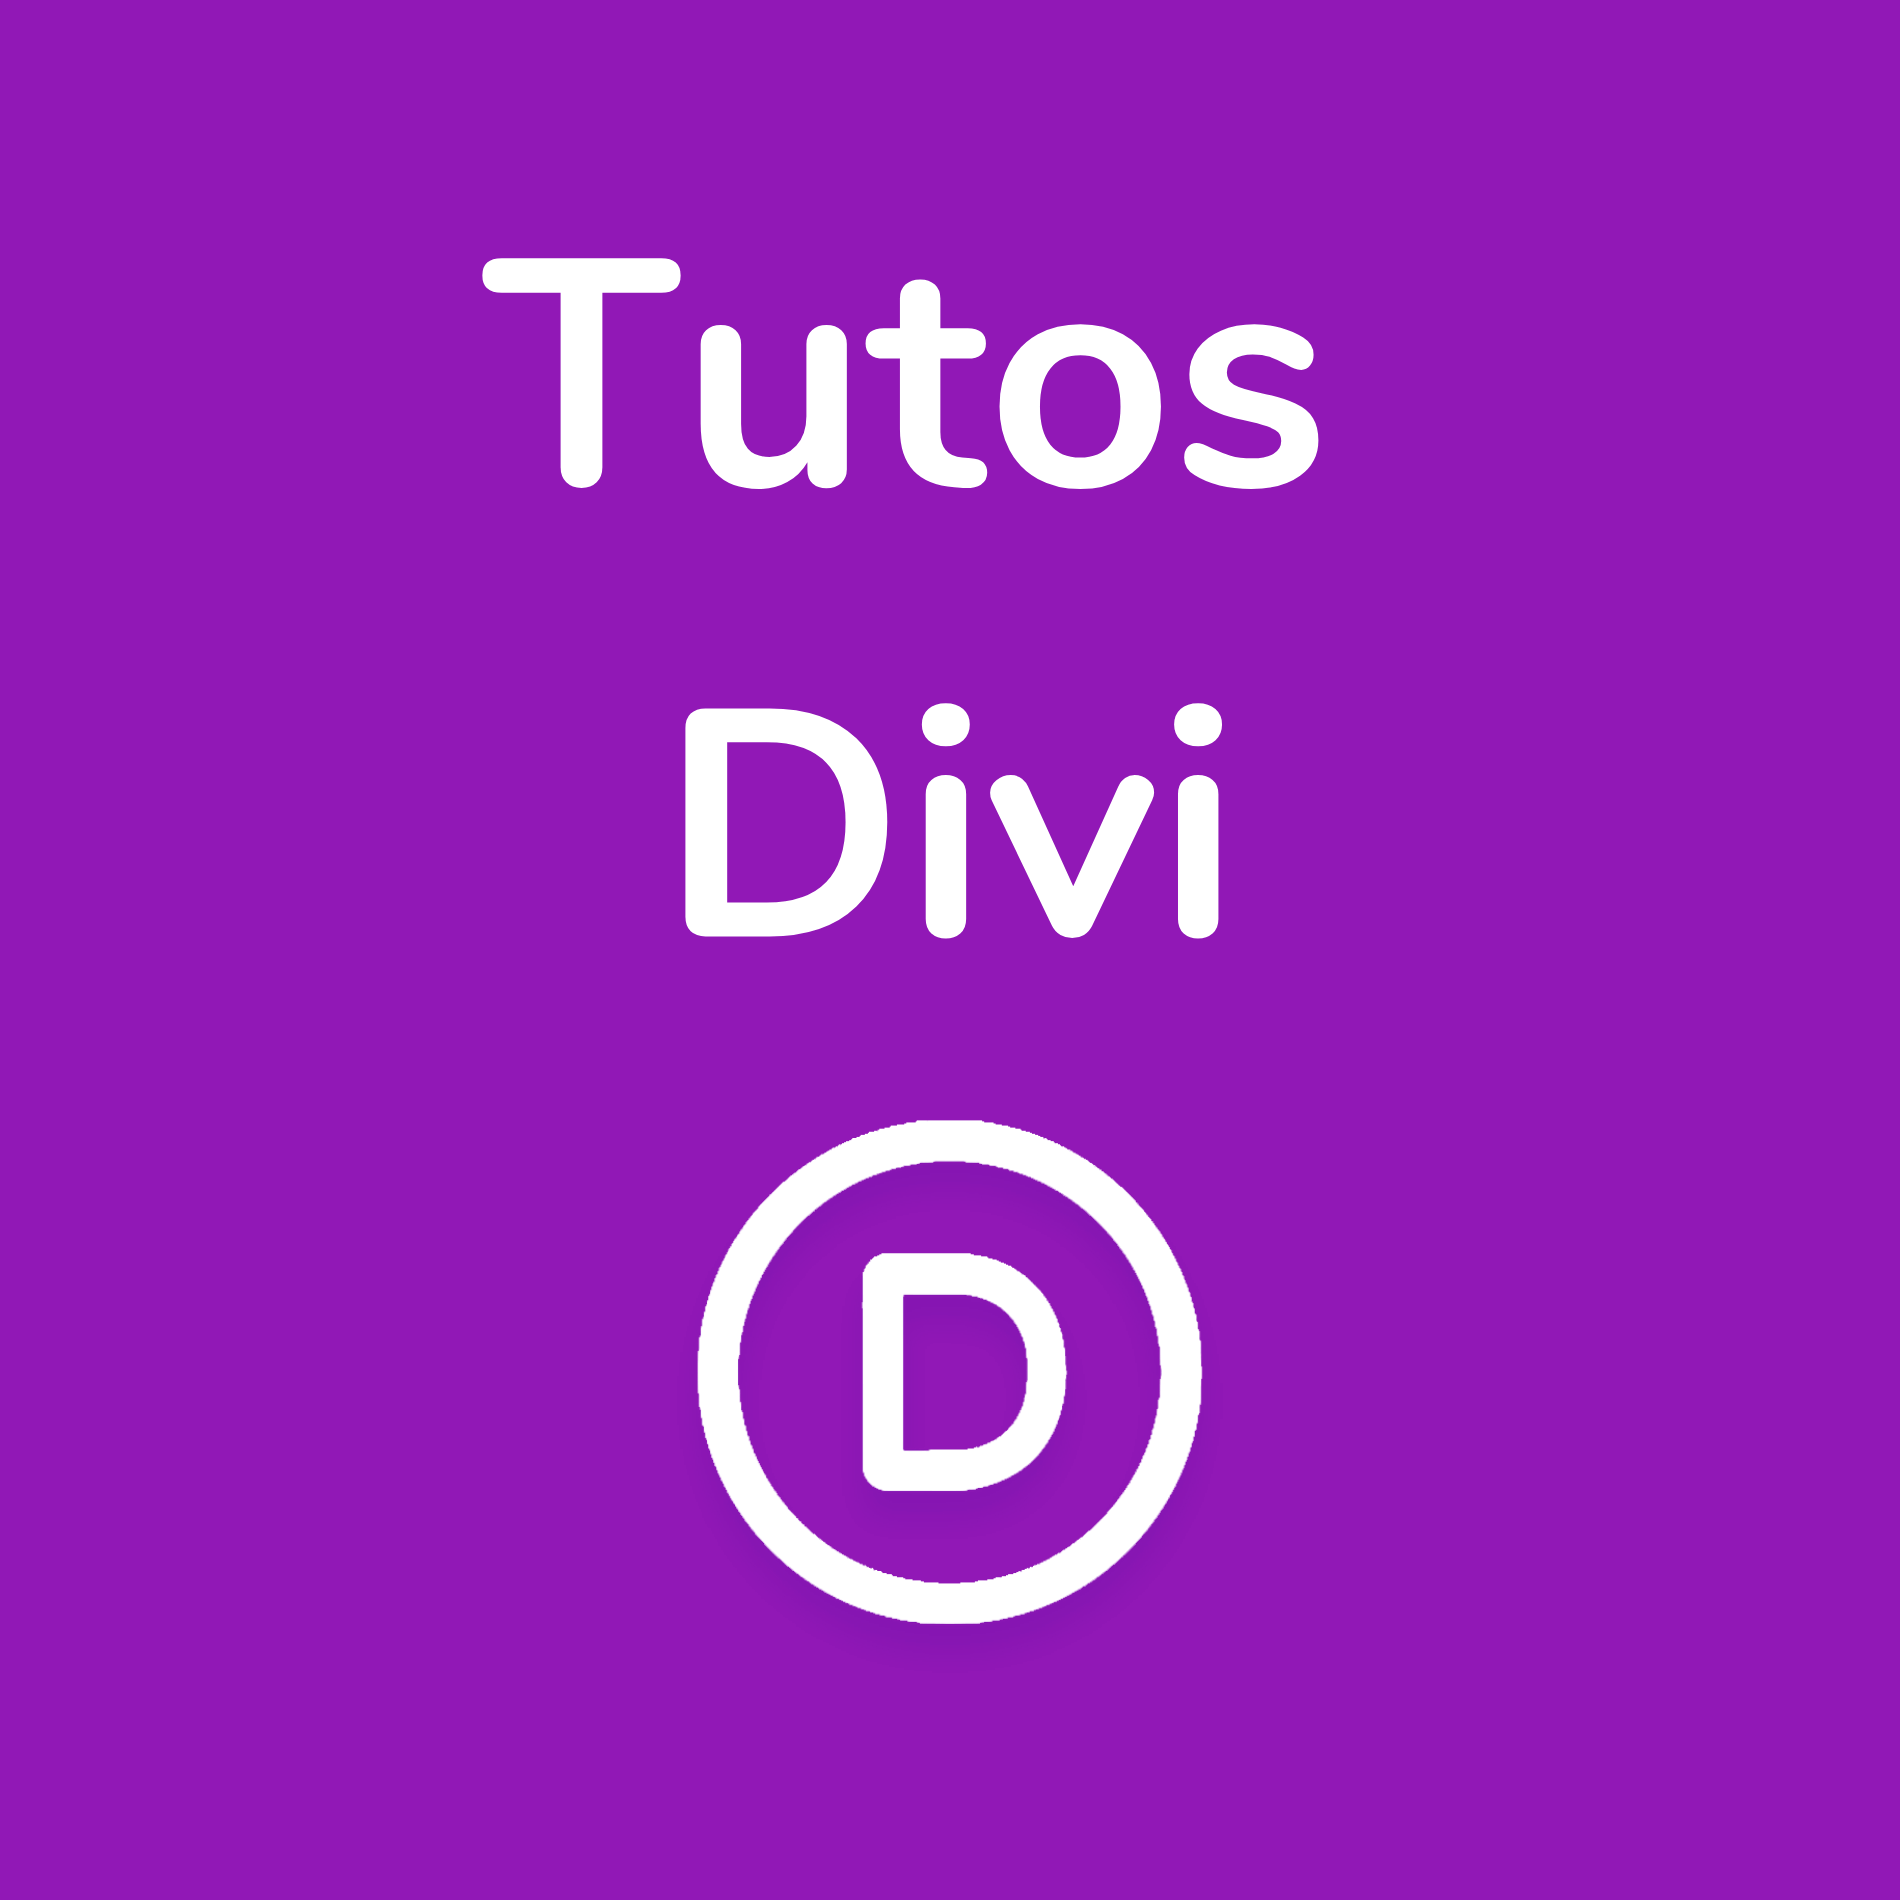 tutos-divi